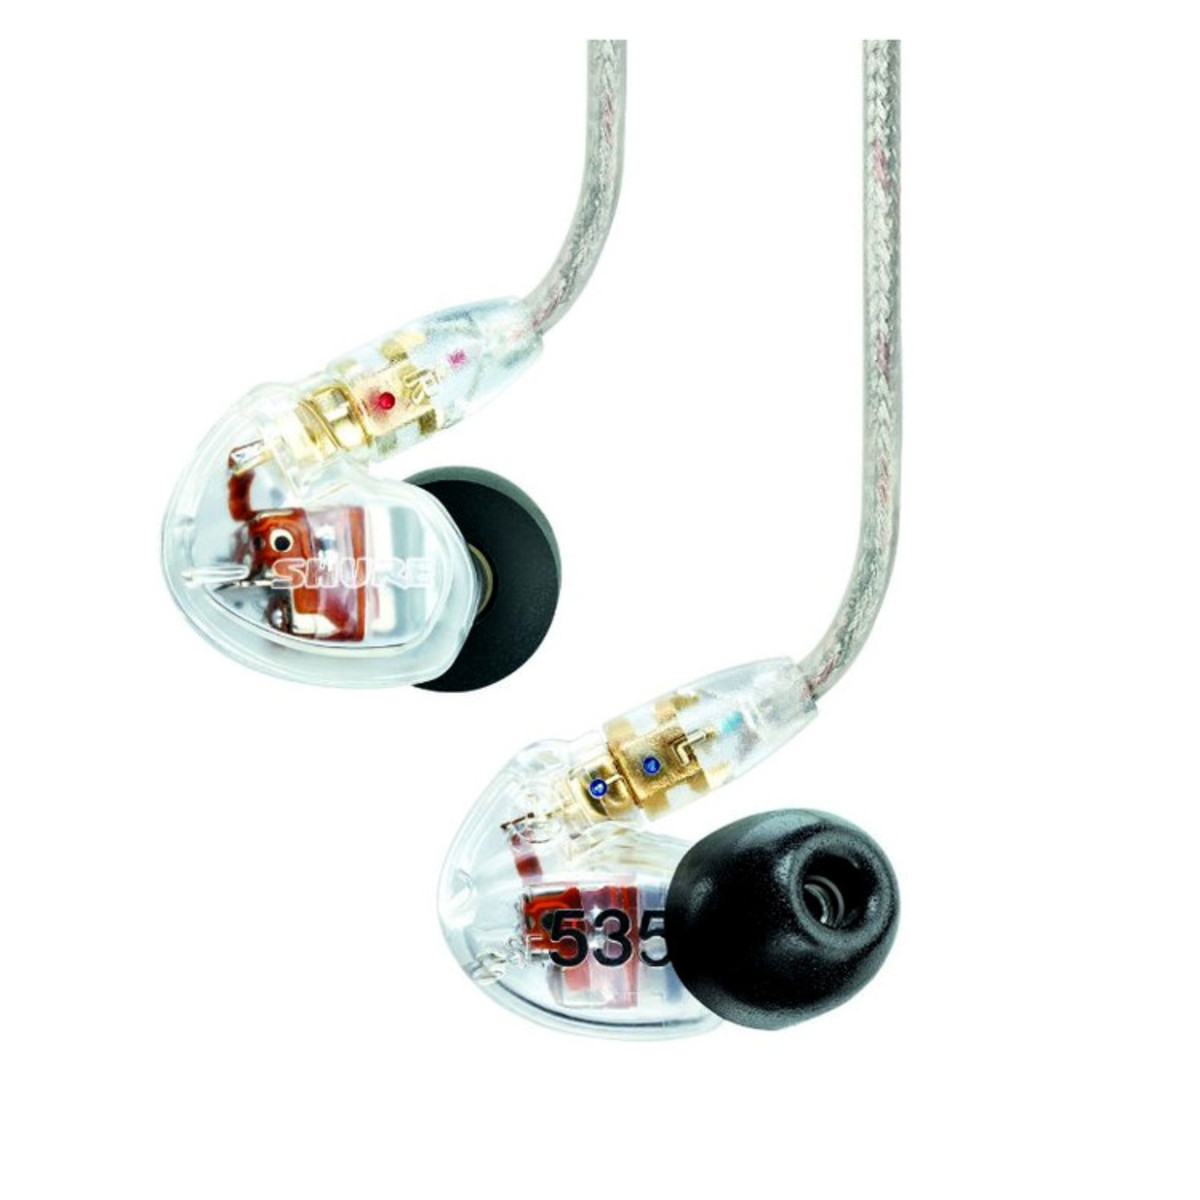 Shure SE215 Earphones EAC64 - CLEAR